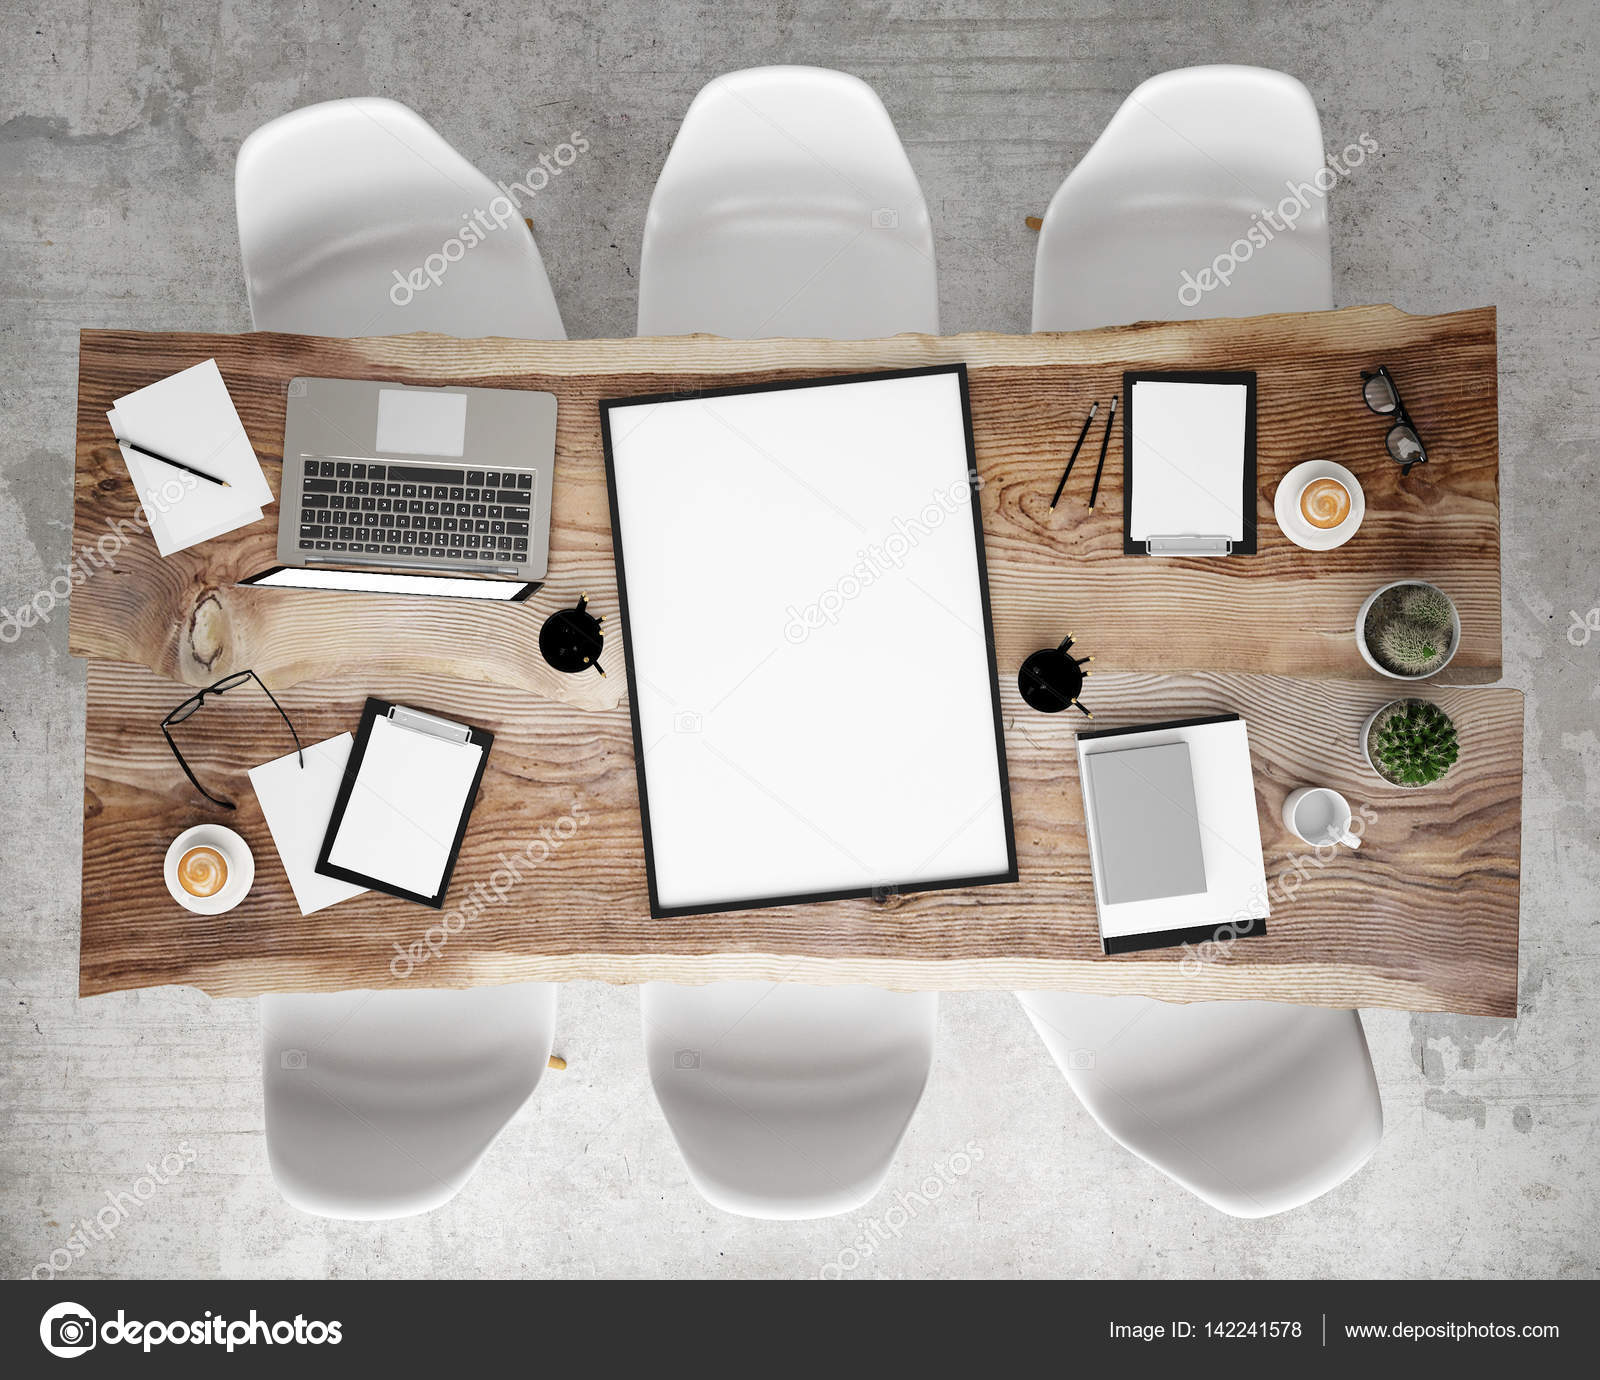 Mock Up Poster On Meeting Conference Table With Office Accessories - Conference table accessories